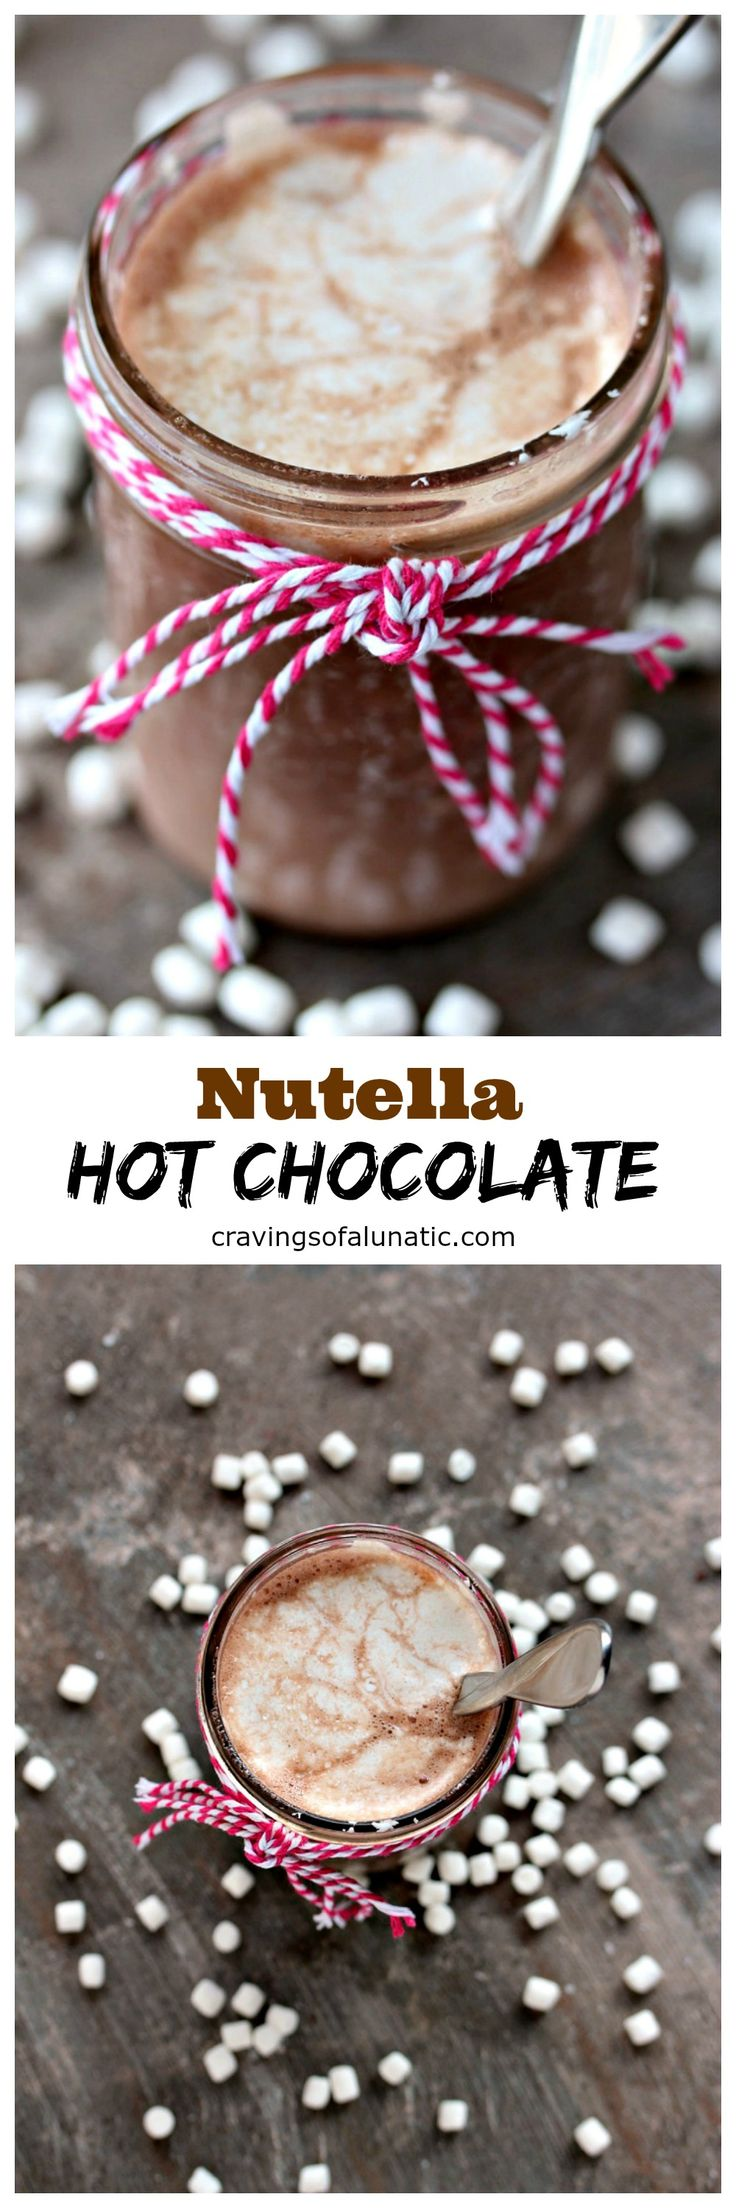 Making hot chocolate for a crowd - Nutella Hot Chocolate